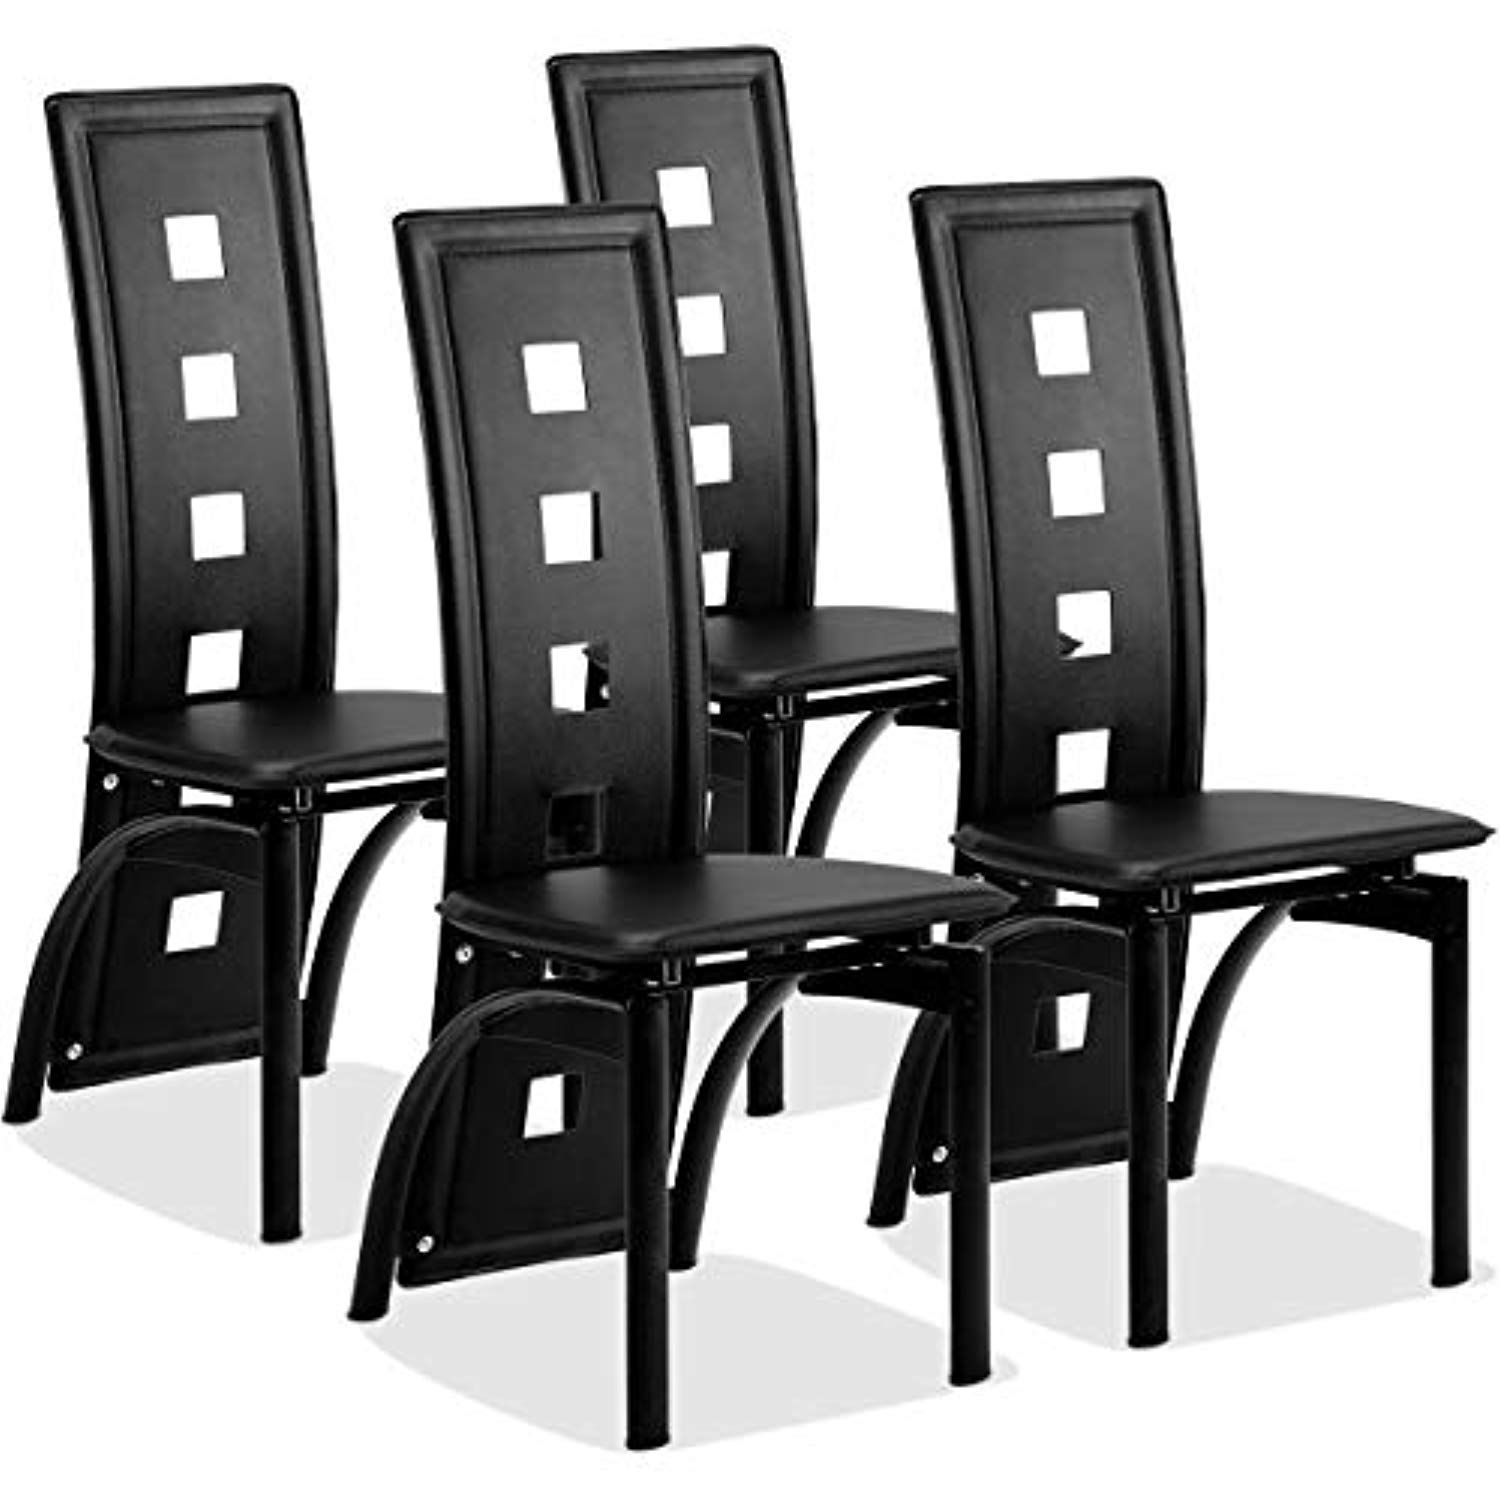 Giantex Set of 4 Dining Chairs Heavy Duty Iron Frame